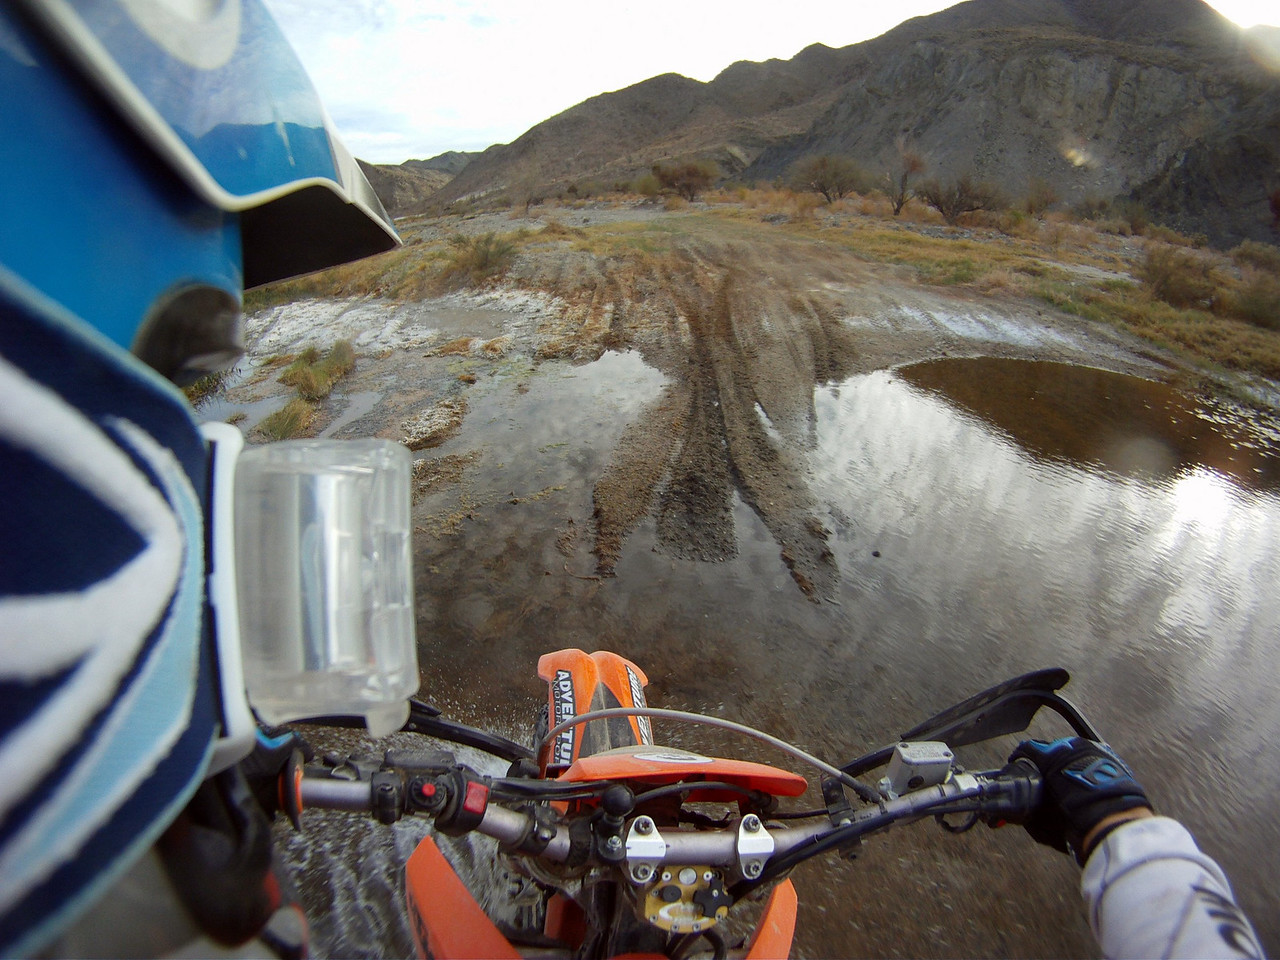 after leaving coco's we rode into this awesome valley. wish I had better pictures of some of the scenery